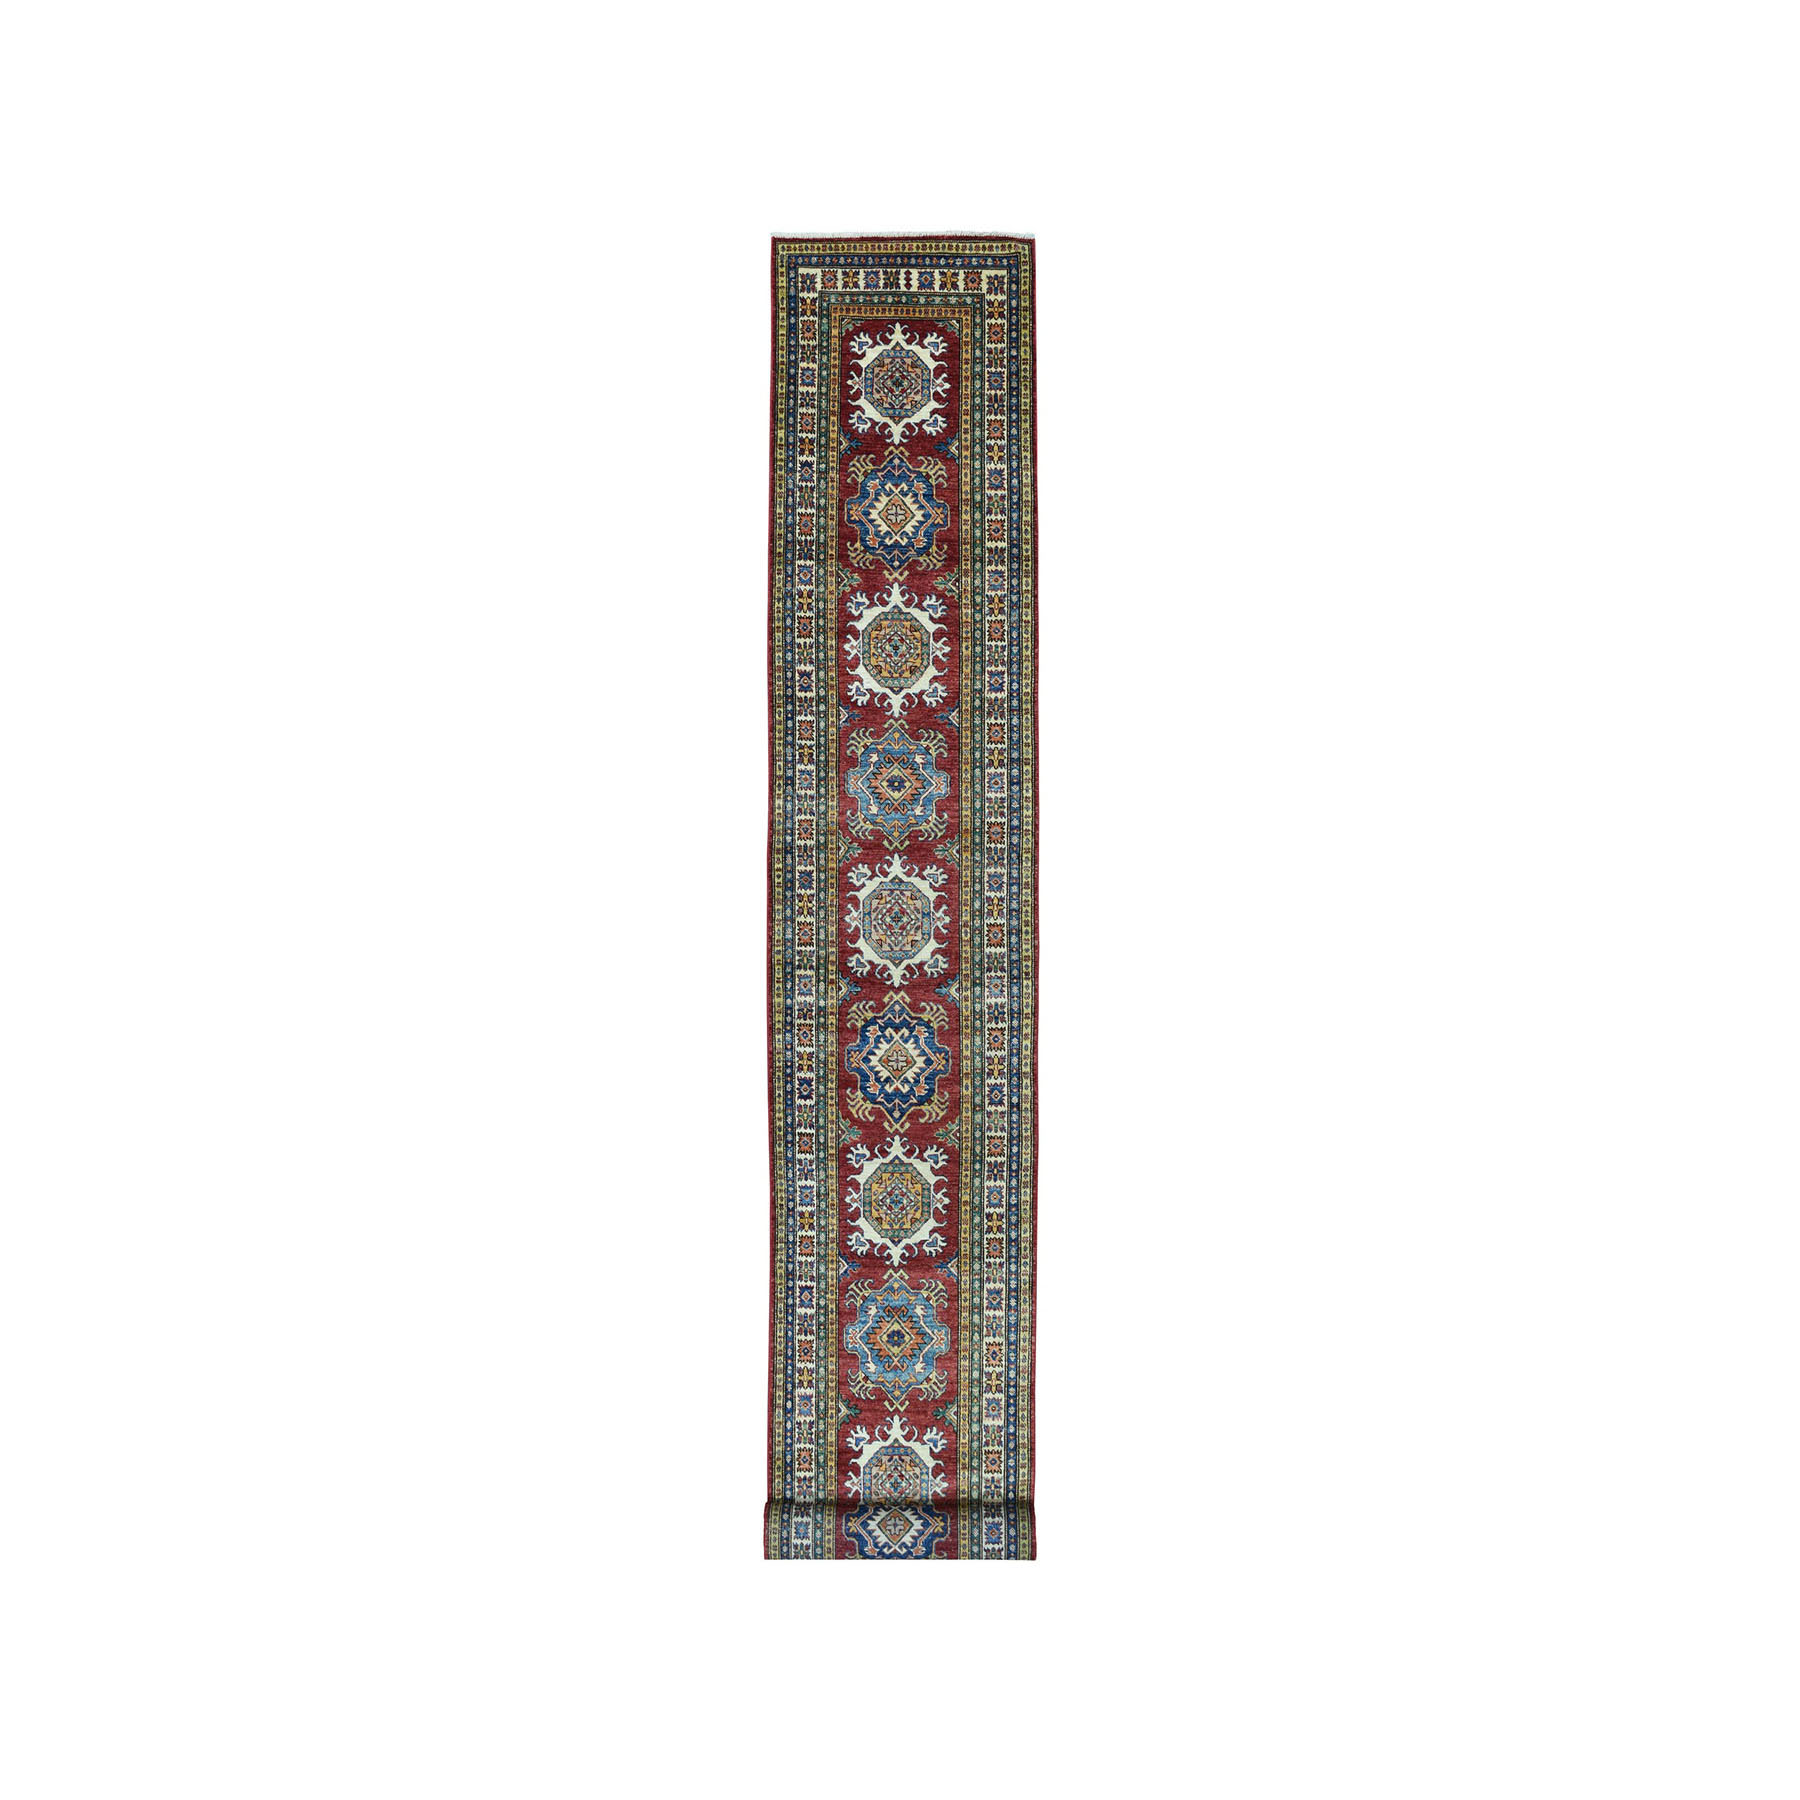 "2'8""X19'5"" Red Super Kazak Pure Wool Geometric Design Hand-Knotted Xl Runner Oriental Rug moae0d96"